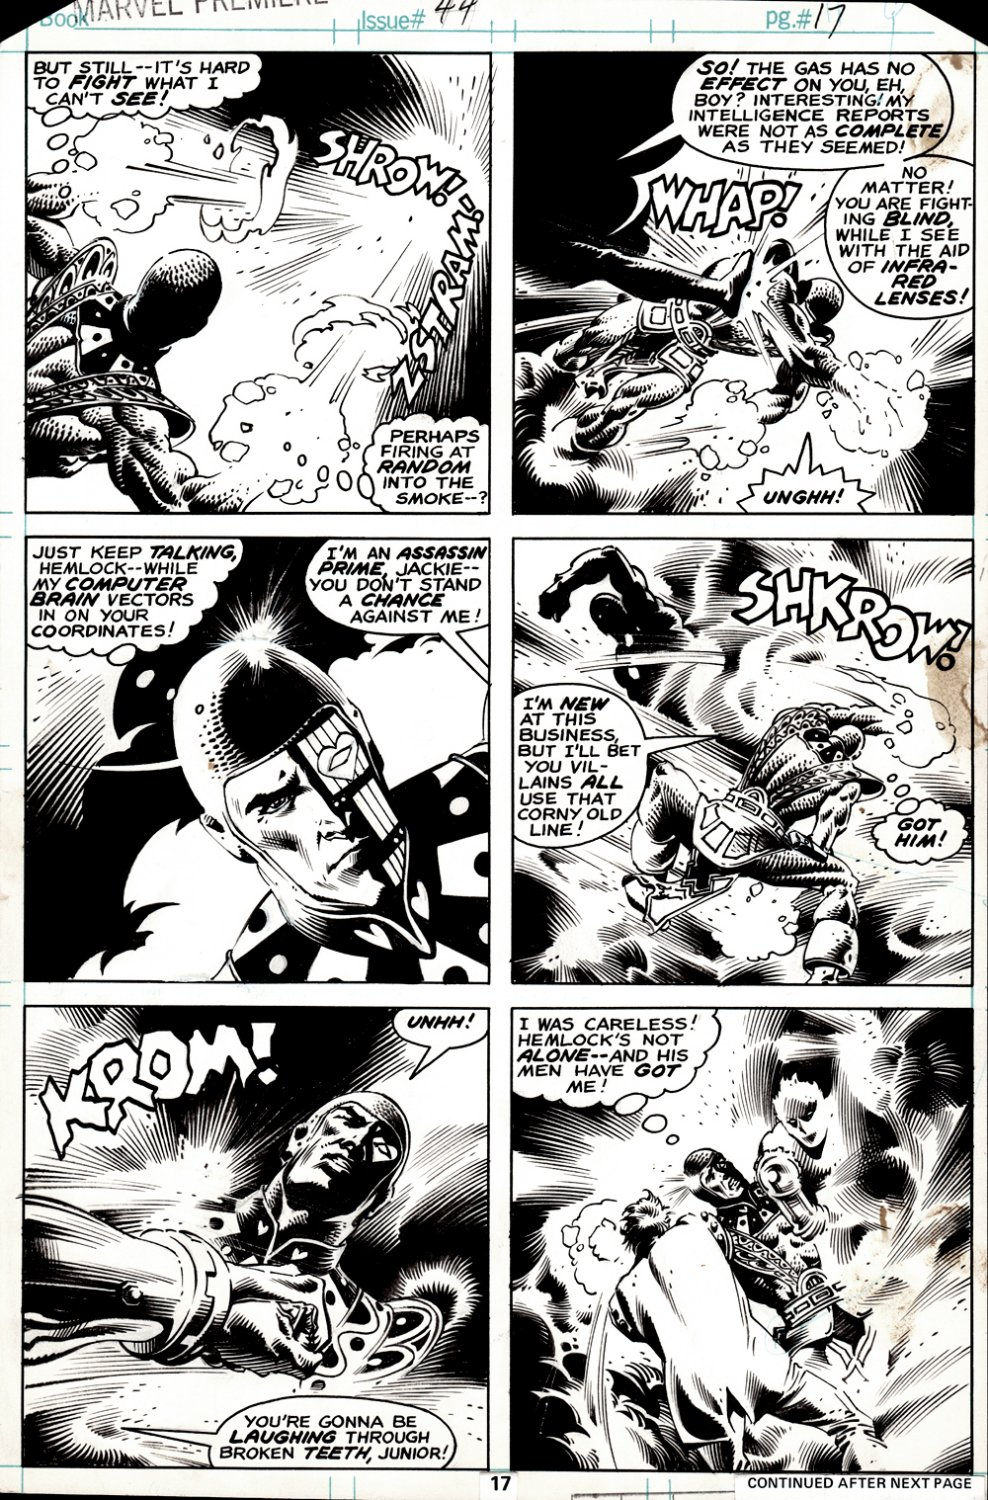 Marvel Premiere #44 p 17 (BEST BATTLE PG IN BOOK! FIRST JACK OF HEARTS SOLO ISSUE BY KEITH GIFFEN!) 1978